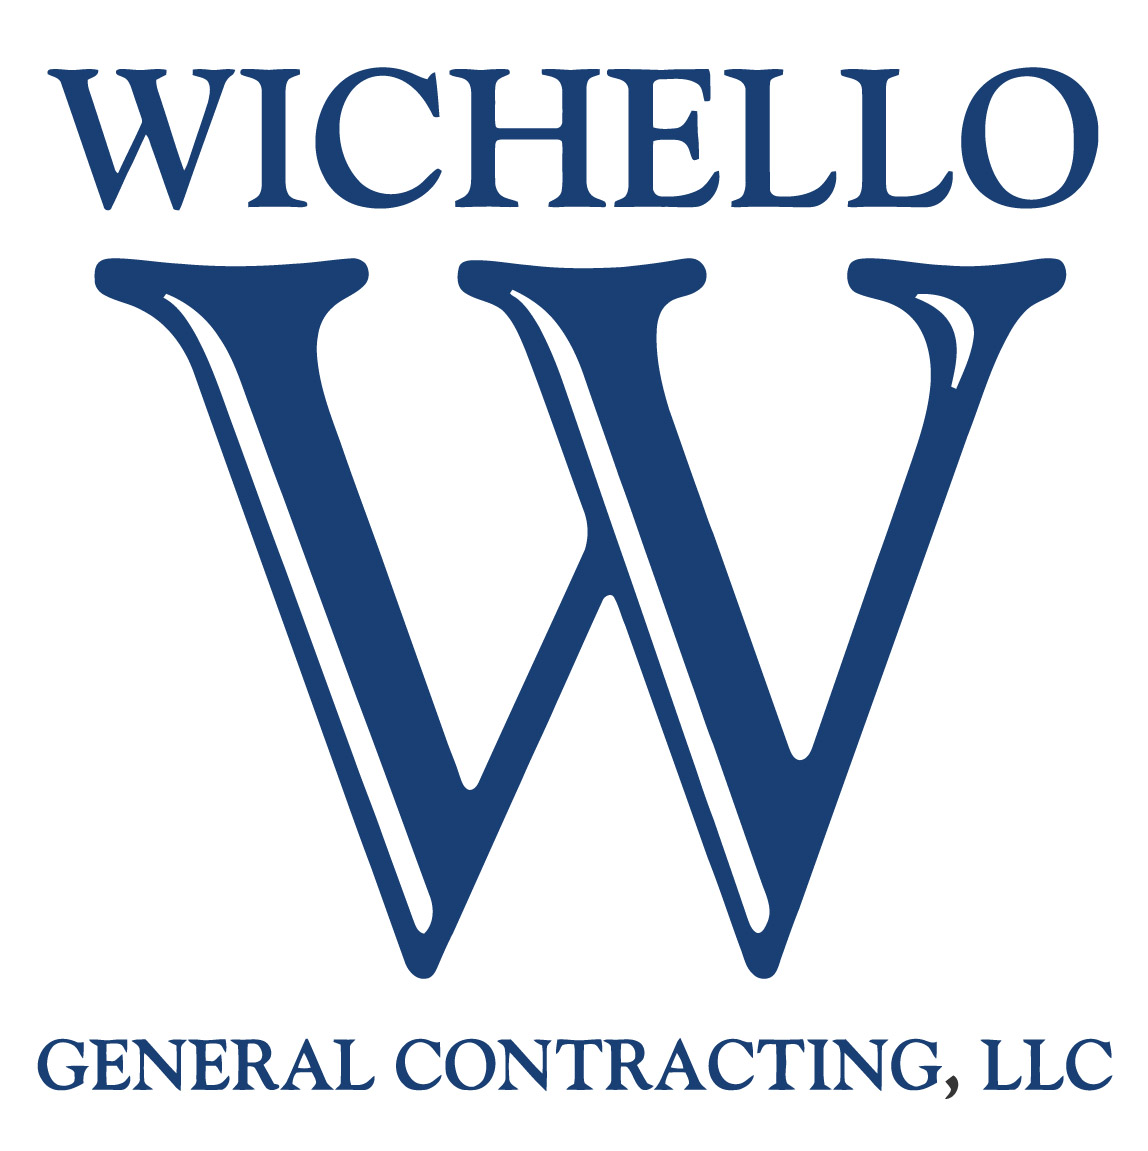 Wichello General Contracting - sponsor of the Diamond Dash